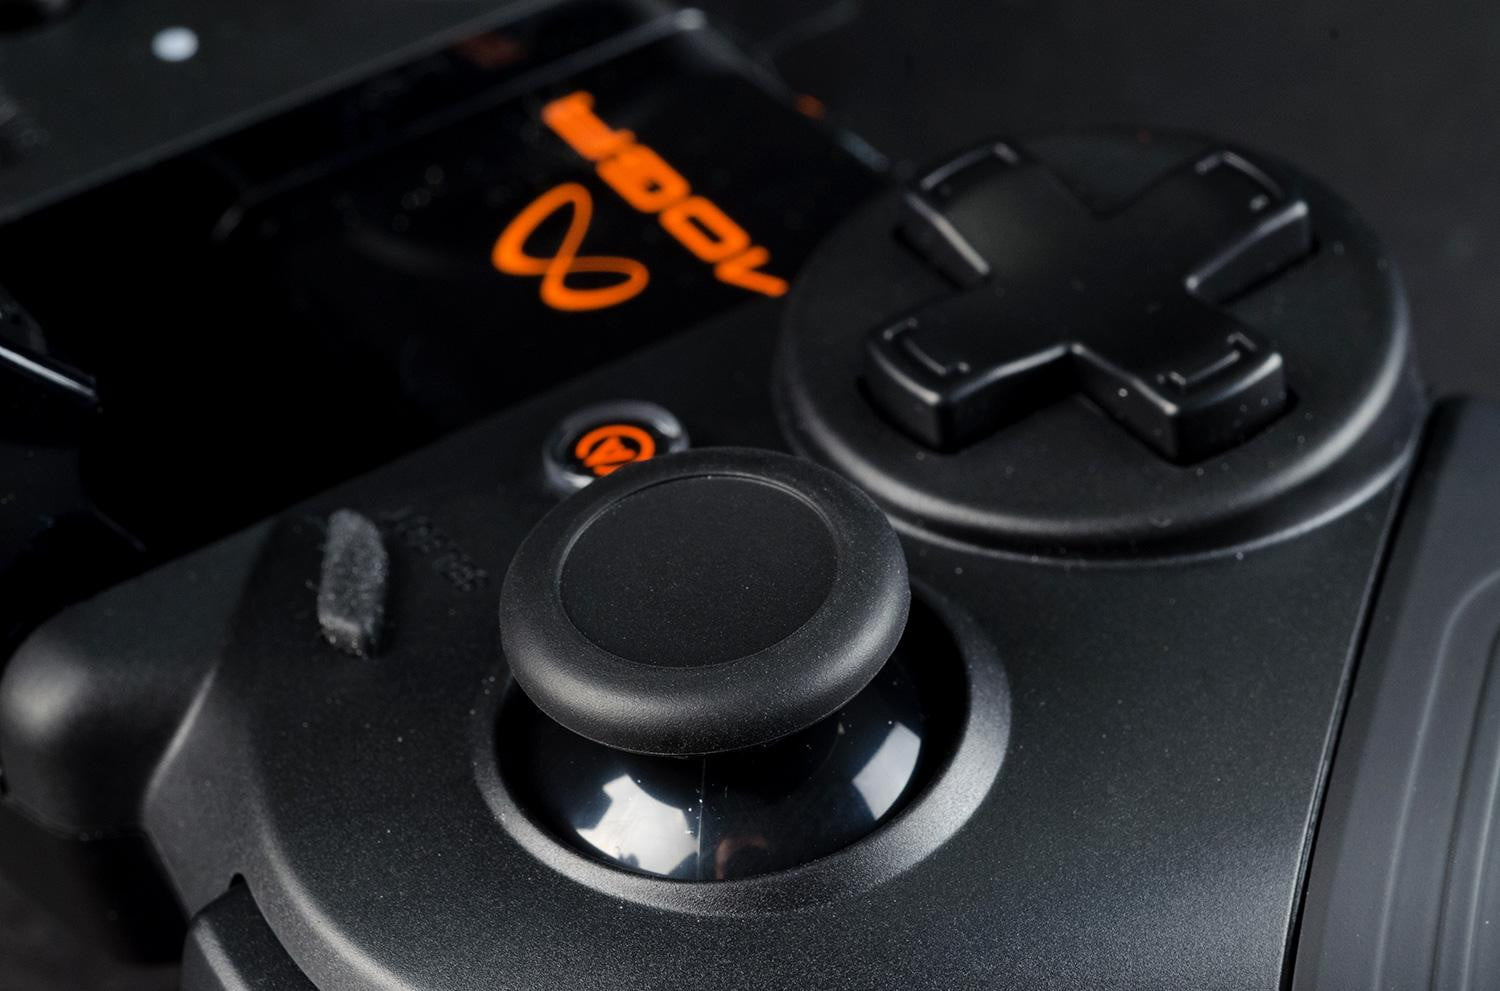 how to get moga controller to work